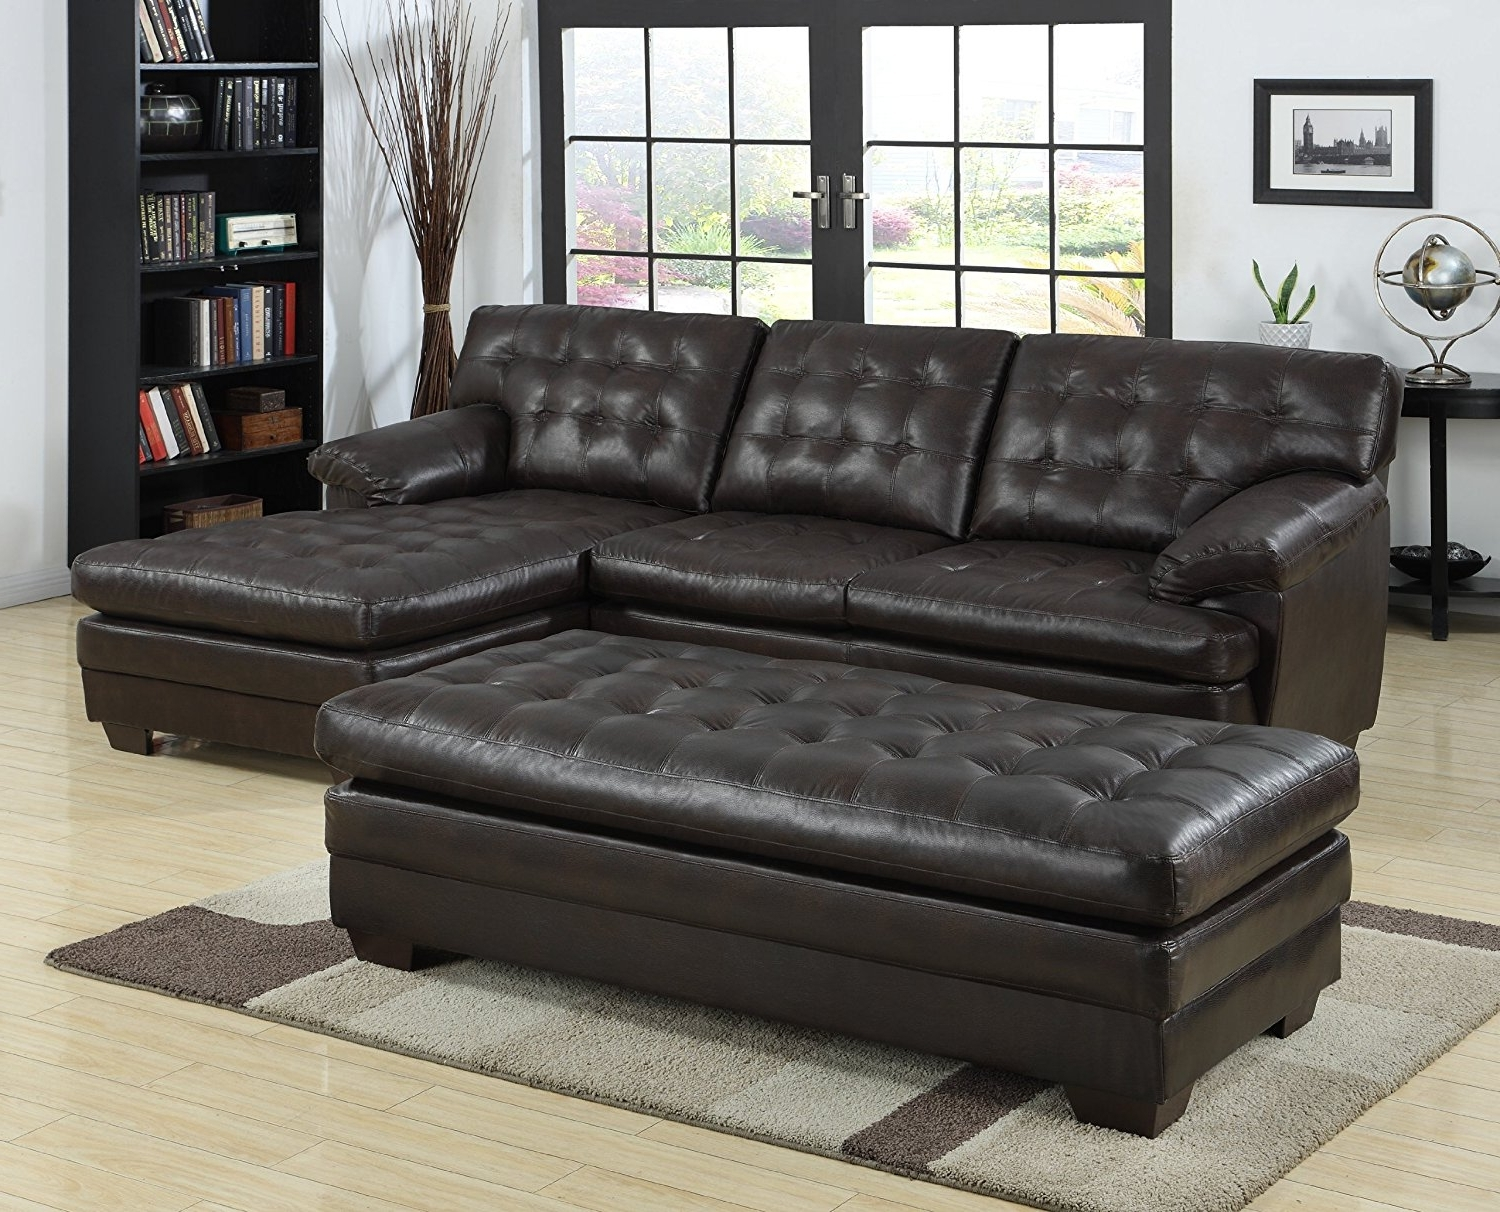 Preferred Amazon: Homelegance 9739 Channel Tufted 2 Piece Sectional Sofa Inside Sectional Couches With Chaise (View 7 of 15)